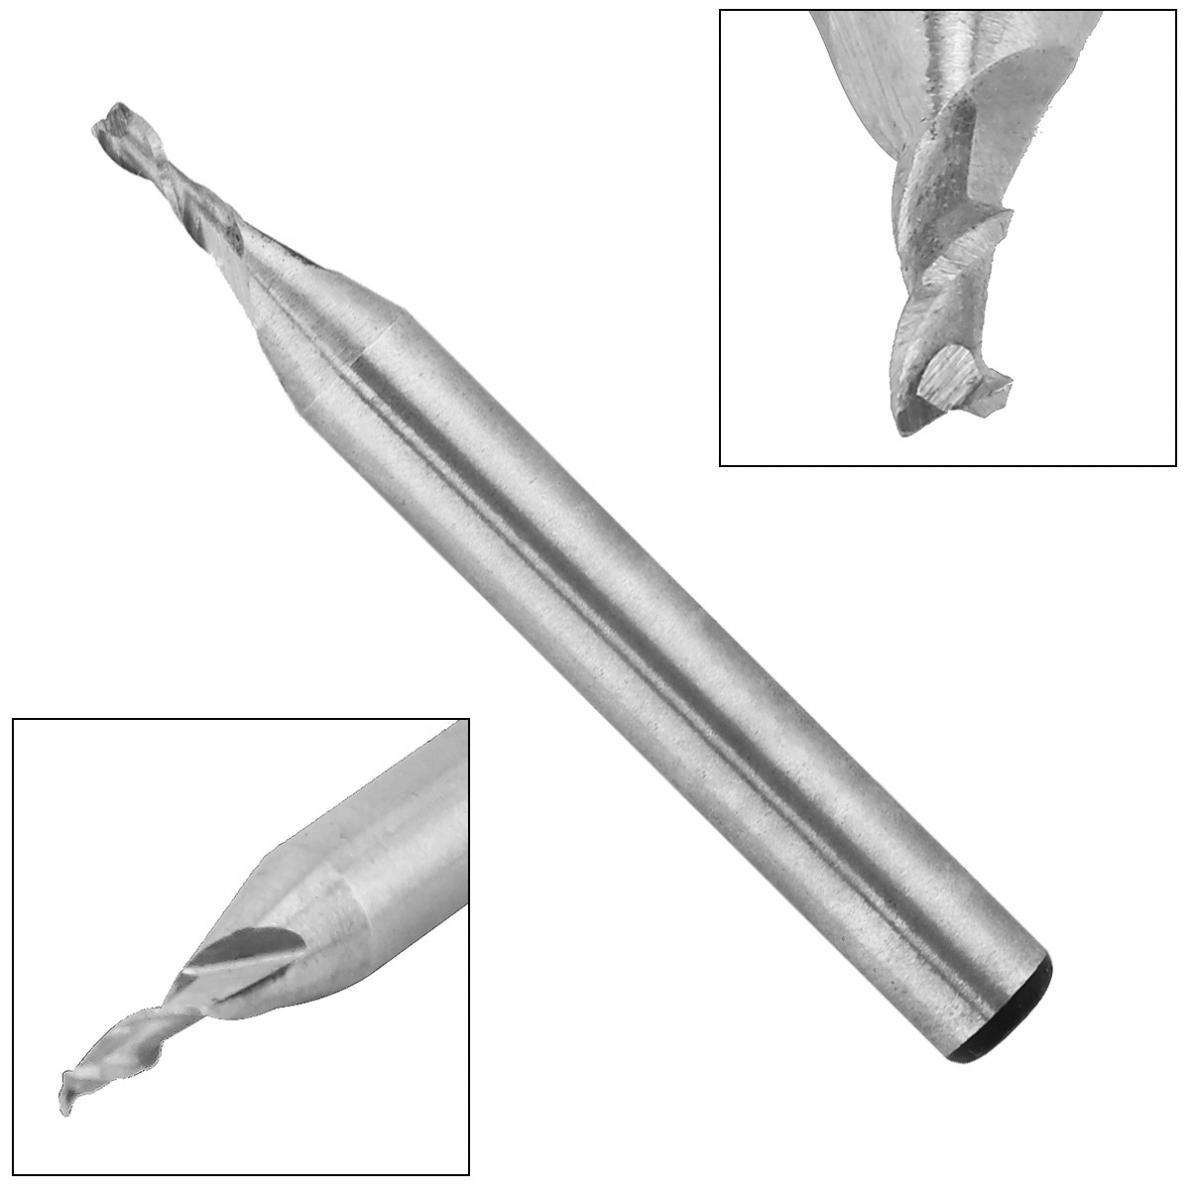 2mm 2 Flute HSS End Mill Cutter With Super Hard  Straight Shank For CNC Mold  Processing